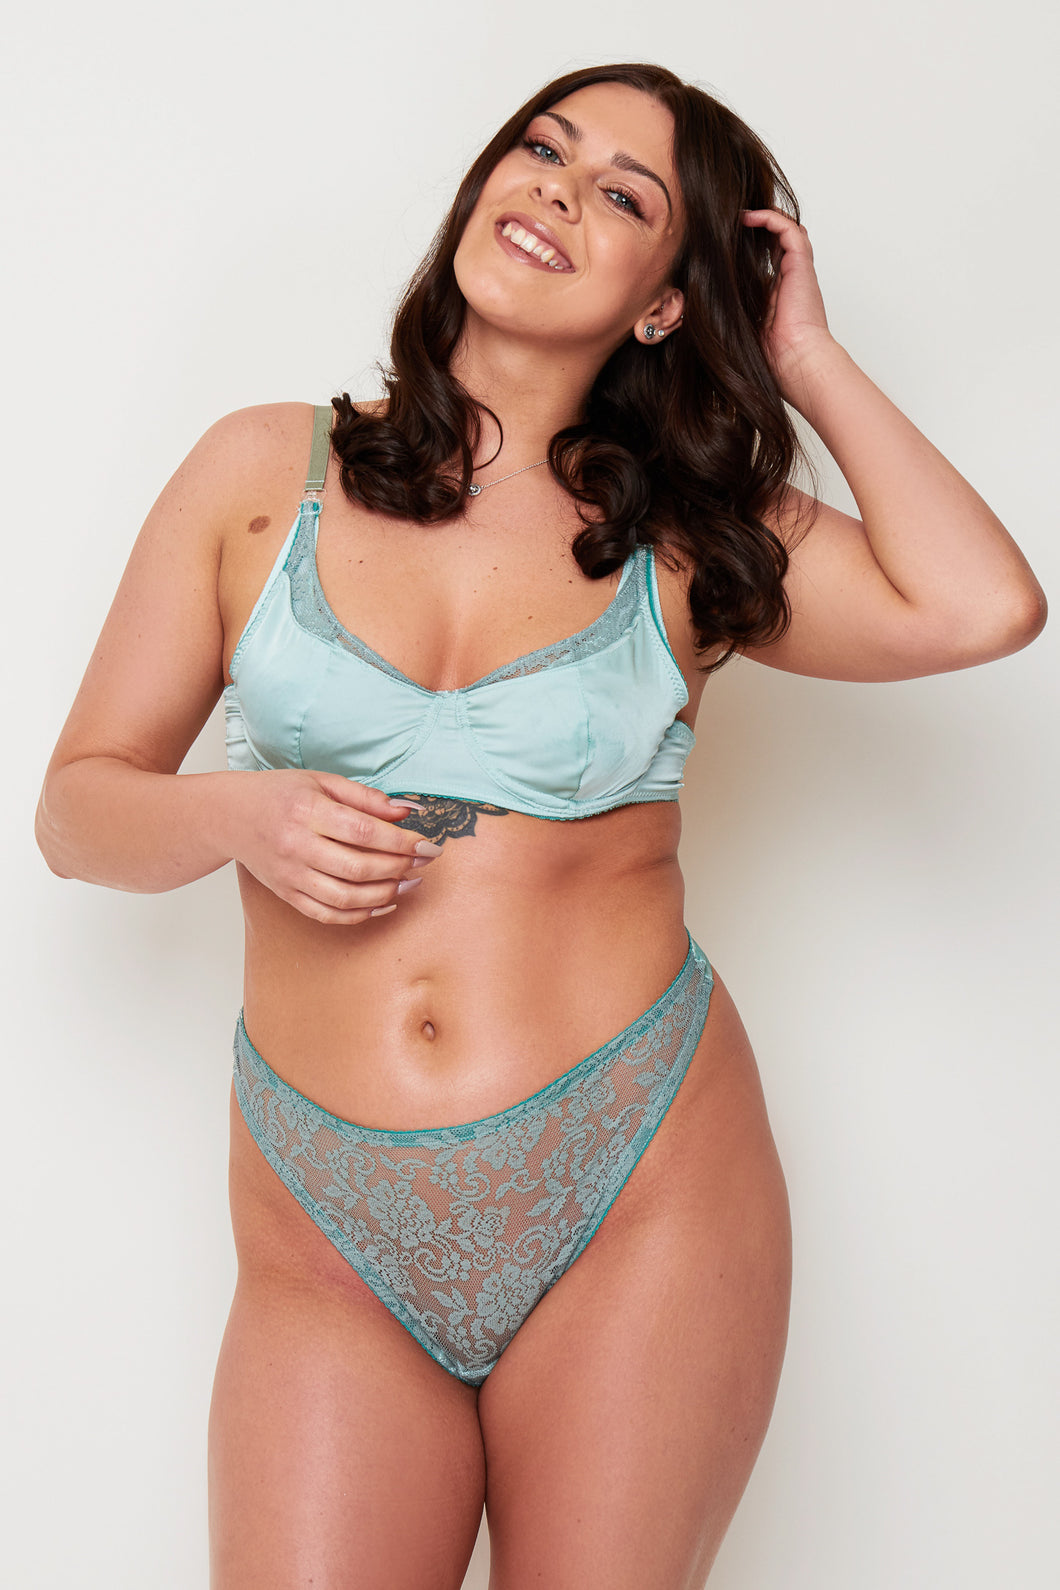 GREEN PASTEL NURSING BRA